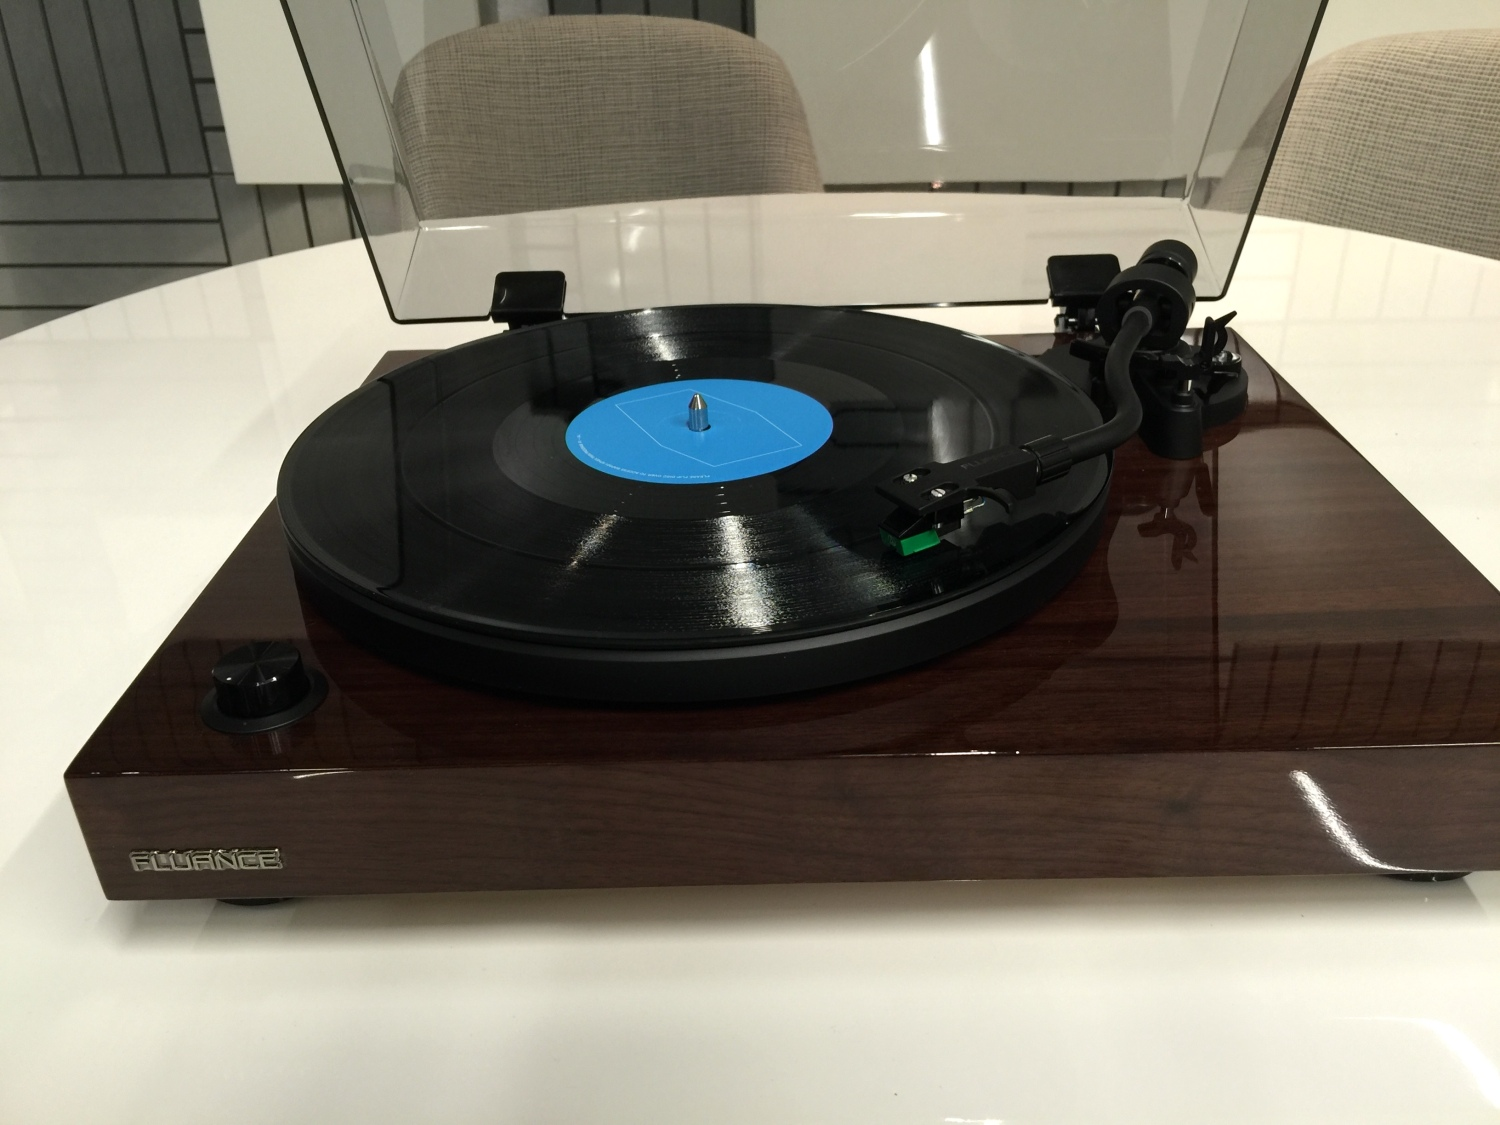 The Fluance RT81 is a high quality entry-level turntable at